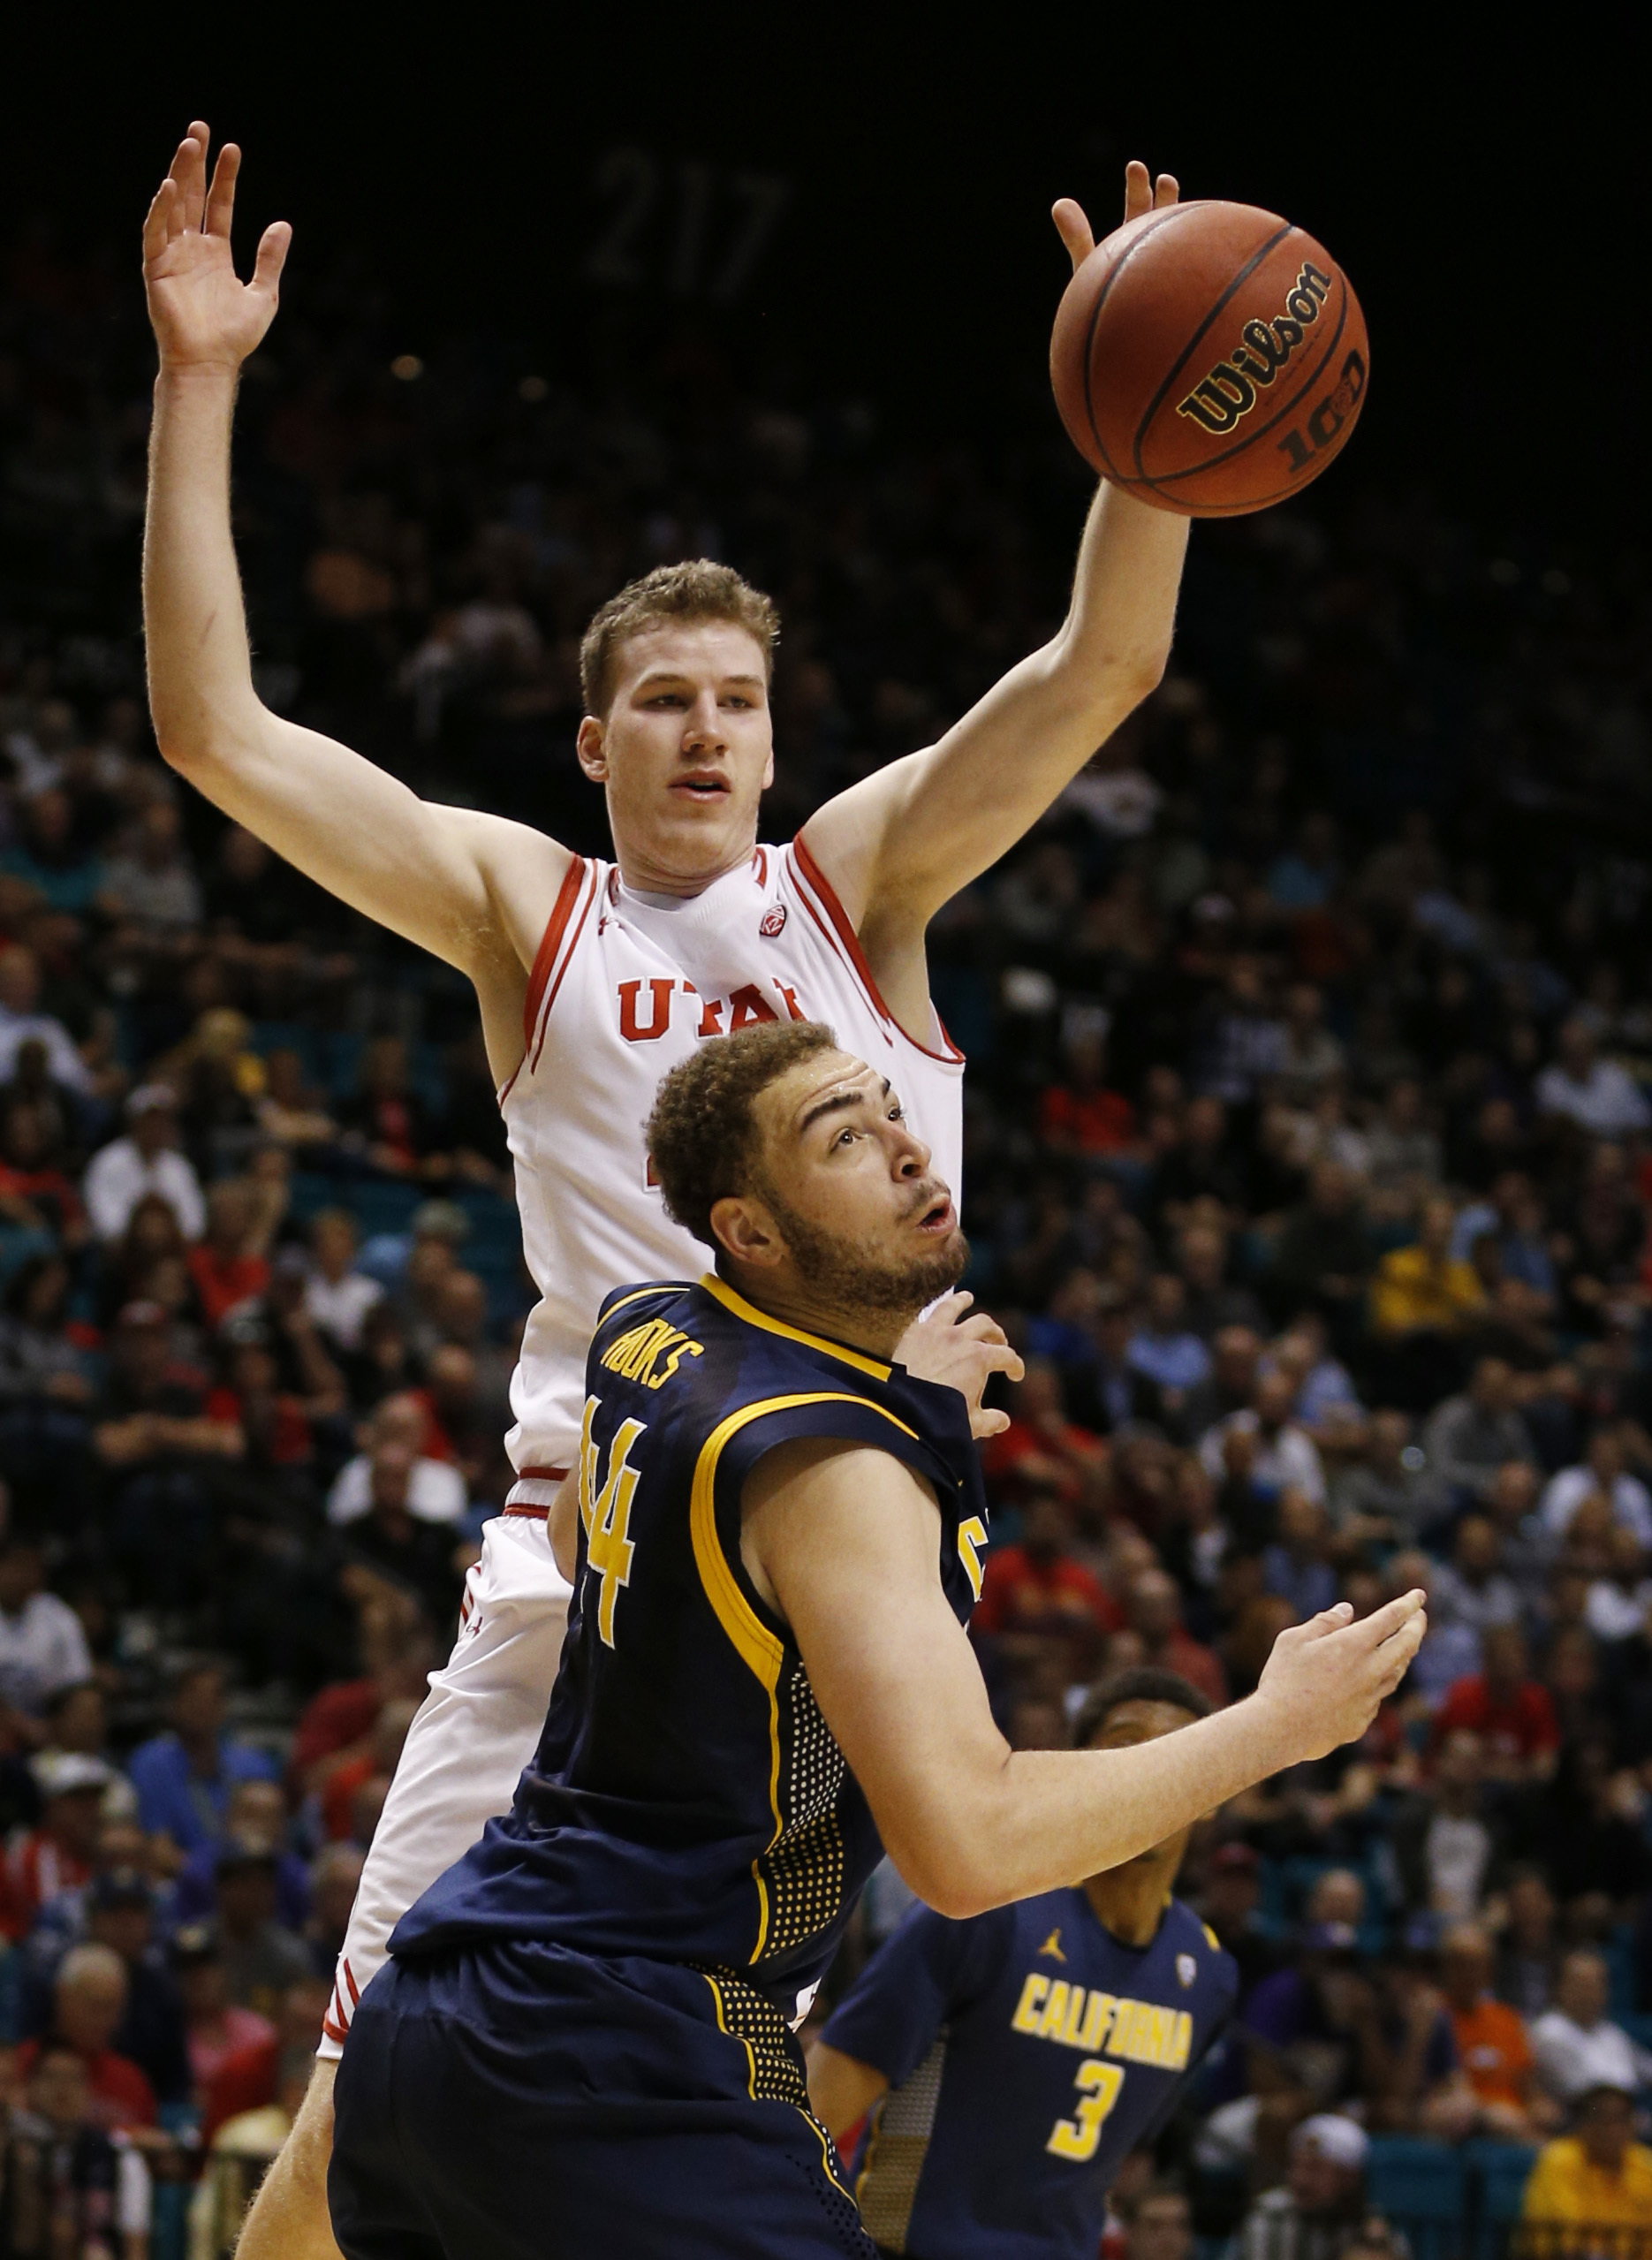 California center Kameron Rooks, bottom, and Utah forward Jakob Poeltl look for the ball during the first half of an NCAA college basketball game in the semifinals of the Pac-12 men's tournament Friday, March 11, 2016, in Las Vegas. (AP Photo/John Locher)